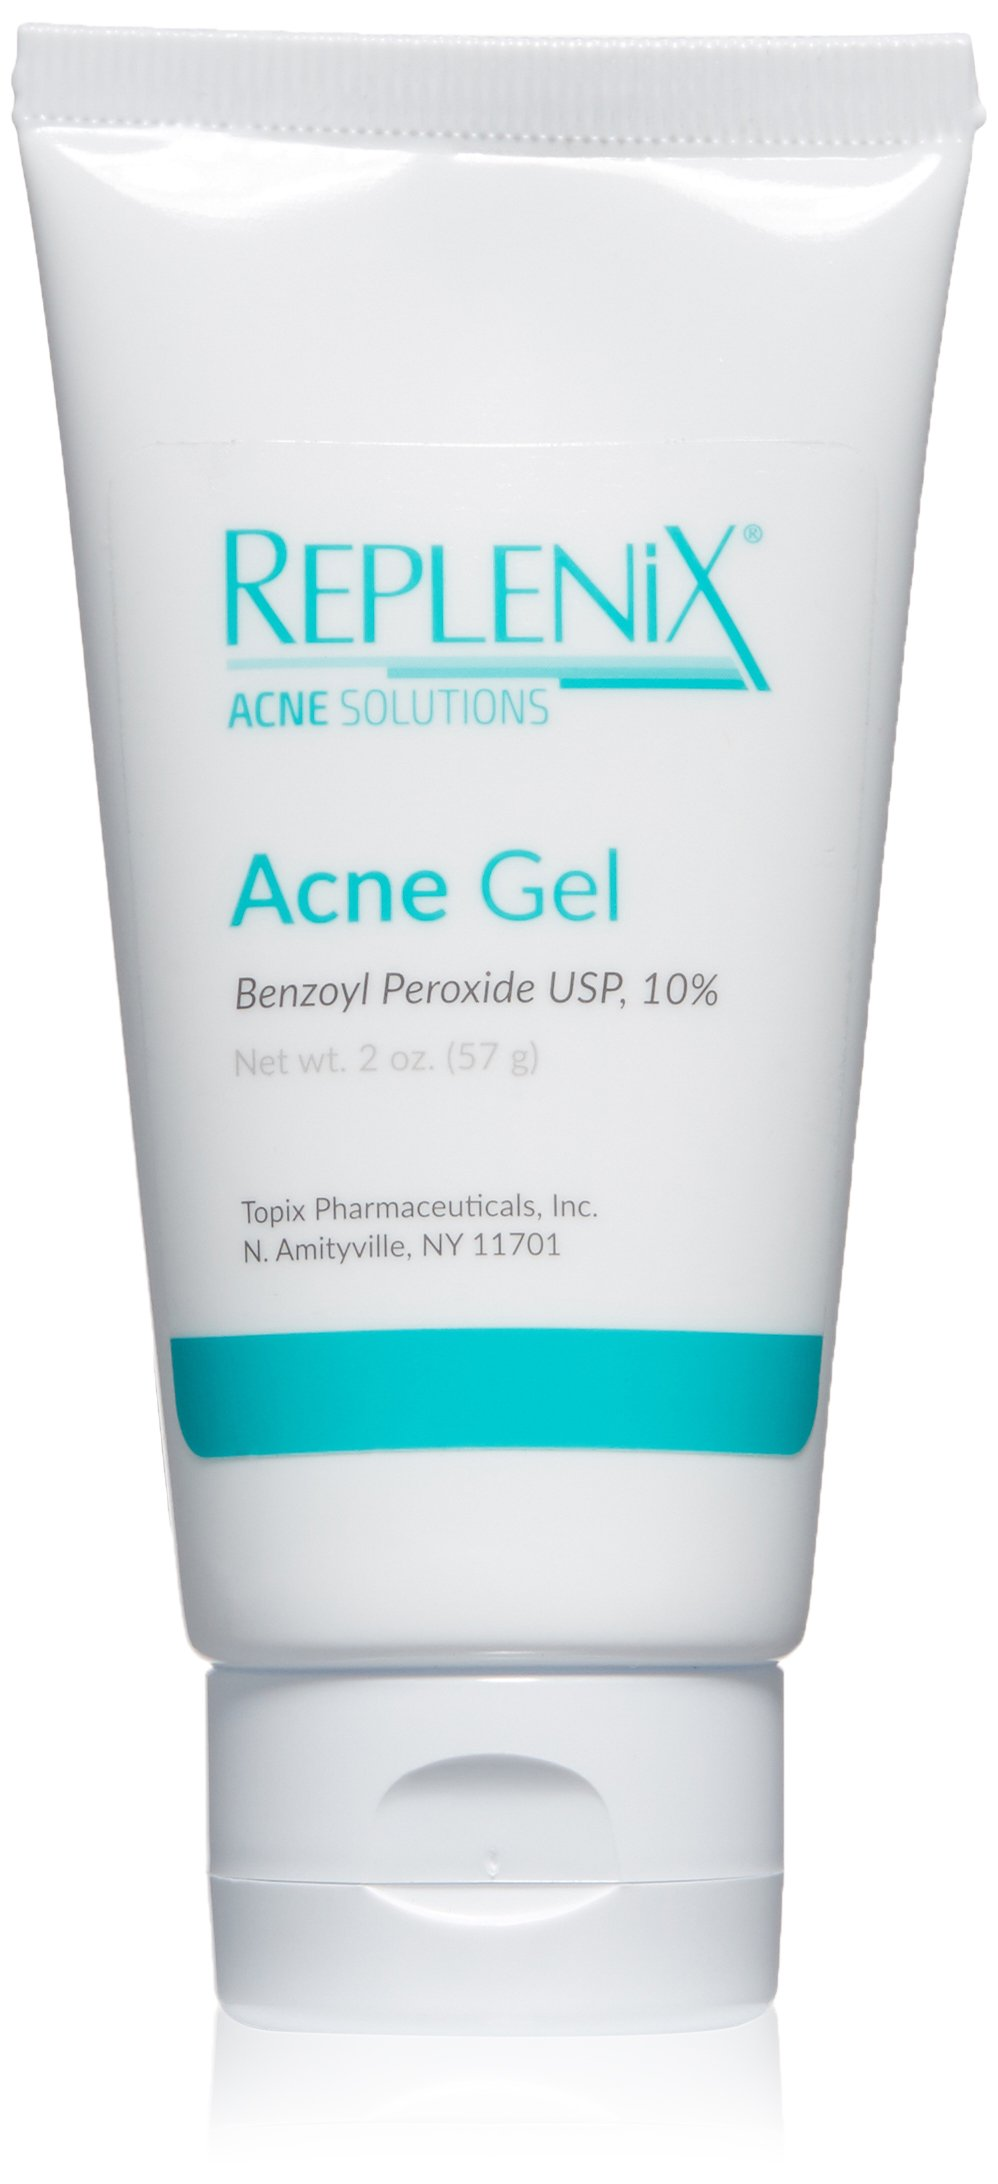 Replenix Acne Solutions Benzoyl Peroxide Gel Spot Treatment